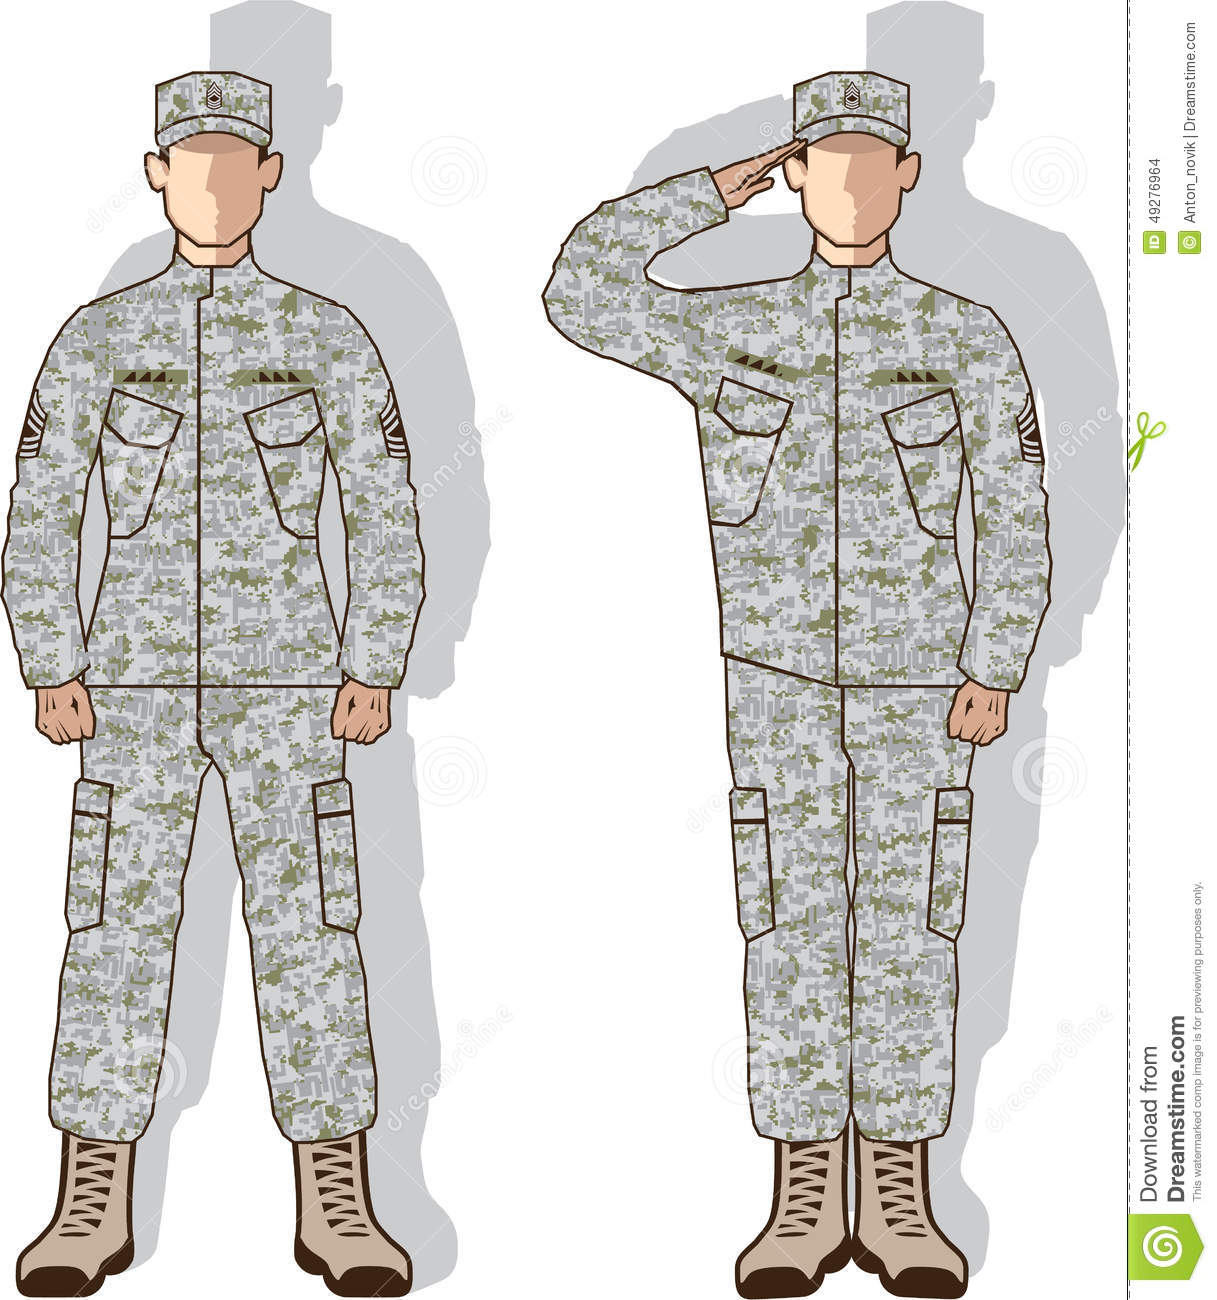 Soldier in uniform salute stock vector. Illustration of ...